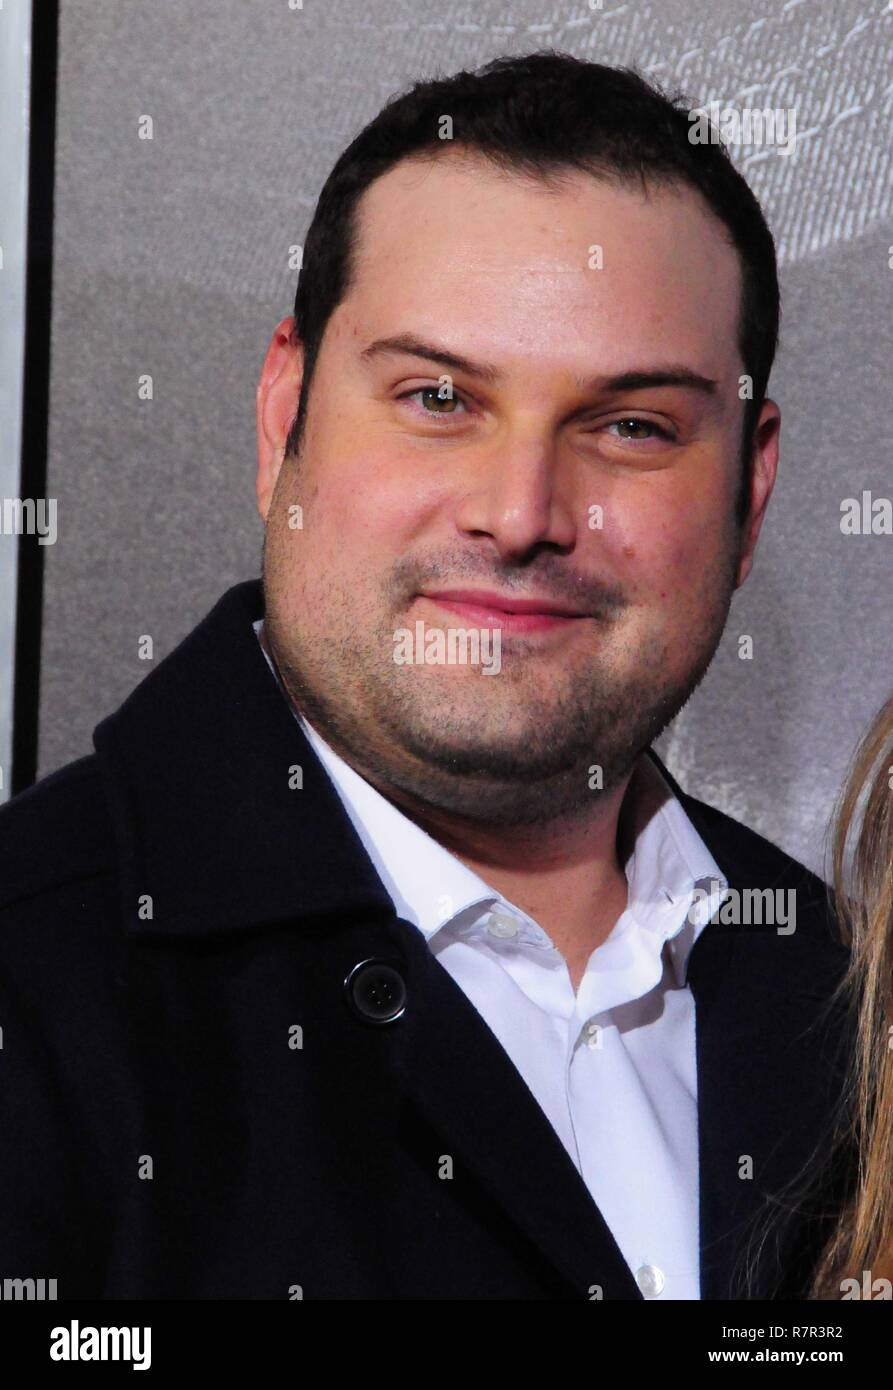 Westwood, California, USA. 10th Dec 2018. Actor Max Adler attends the World Premiere of Warner Bros. Pictures' 'The Mule' on December 10, 2018 at Regency Village Theatre in Westwood, California. Photo by Barry King/Alamy Live News Stock Photo